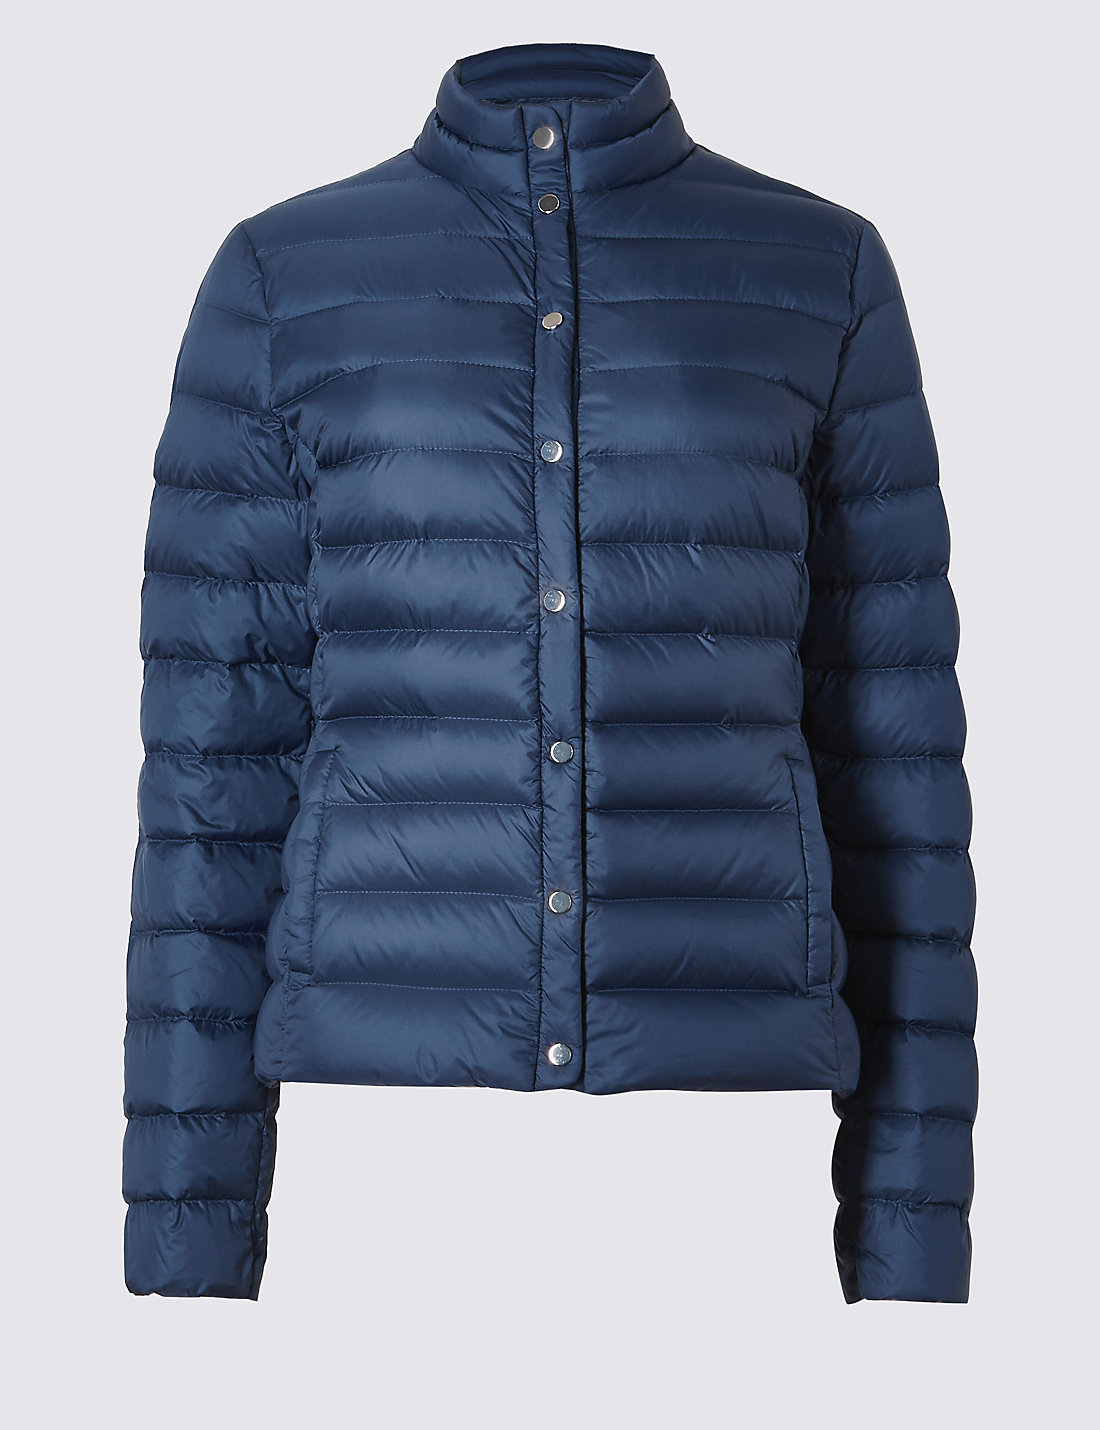 Down & Feather Jacket with Stormwear™ | M&S